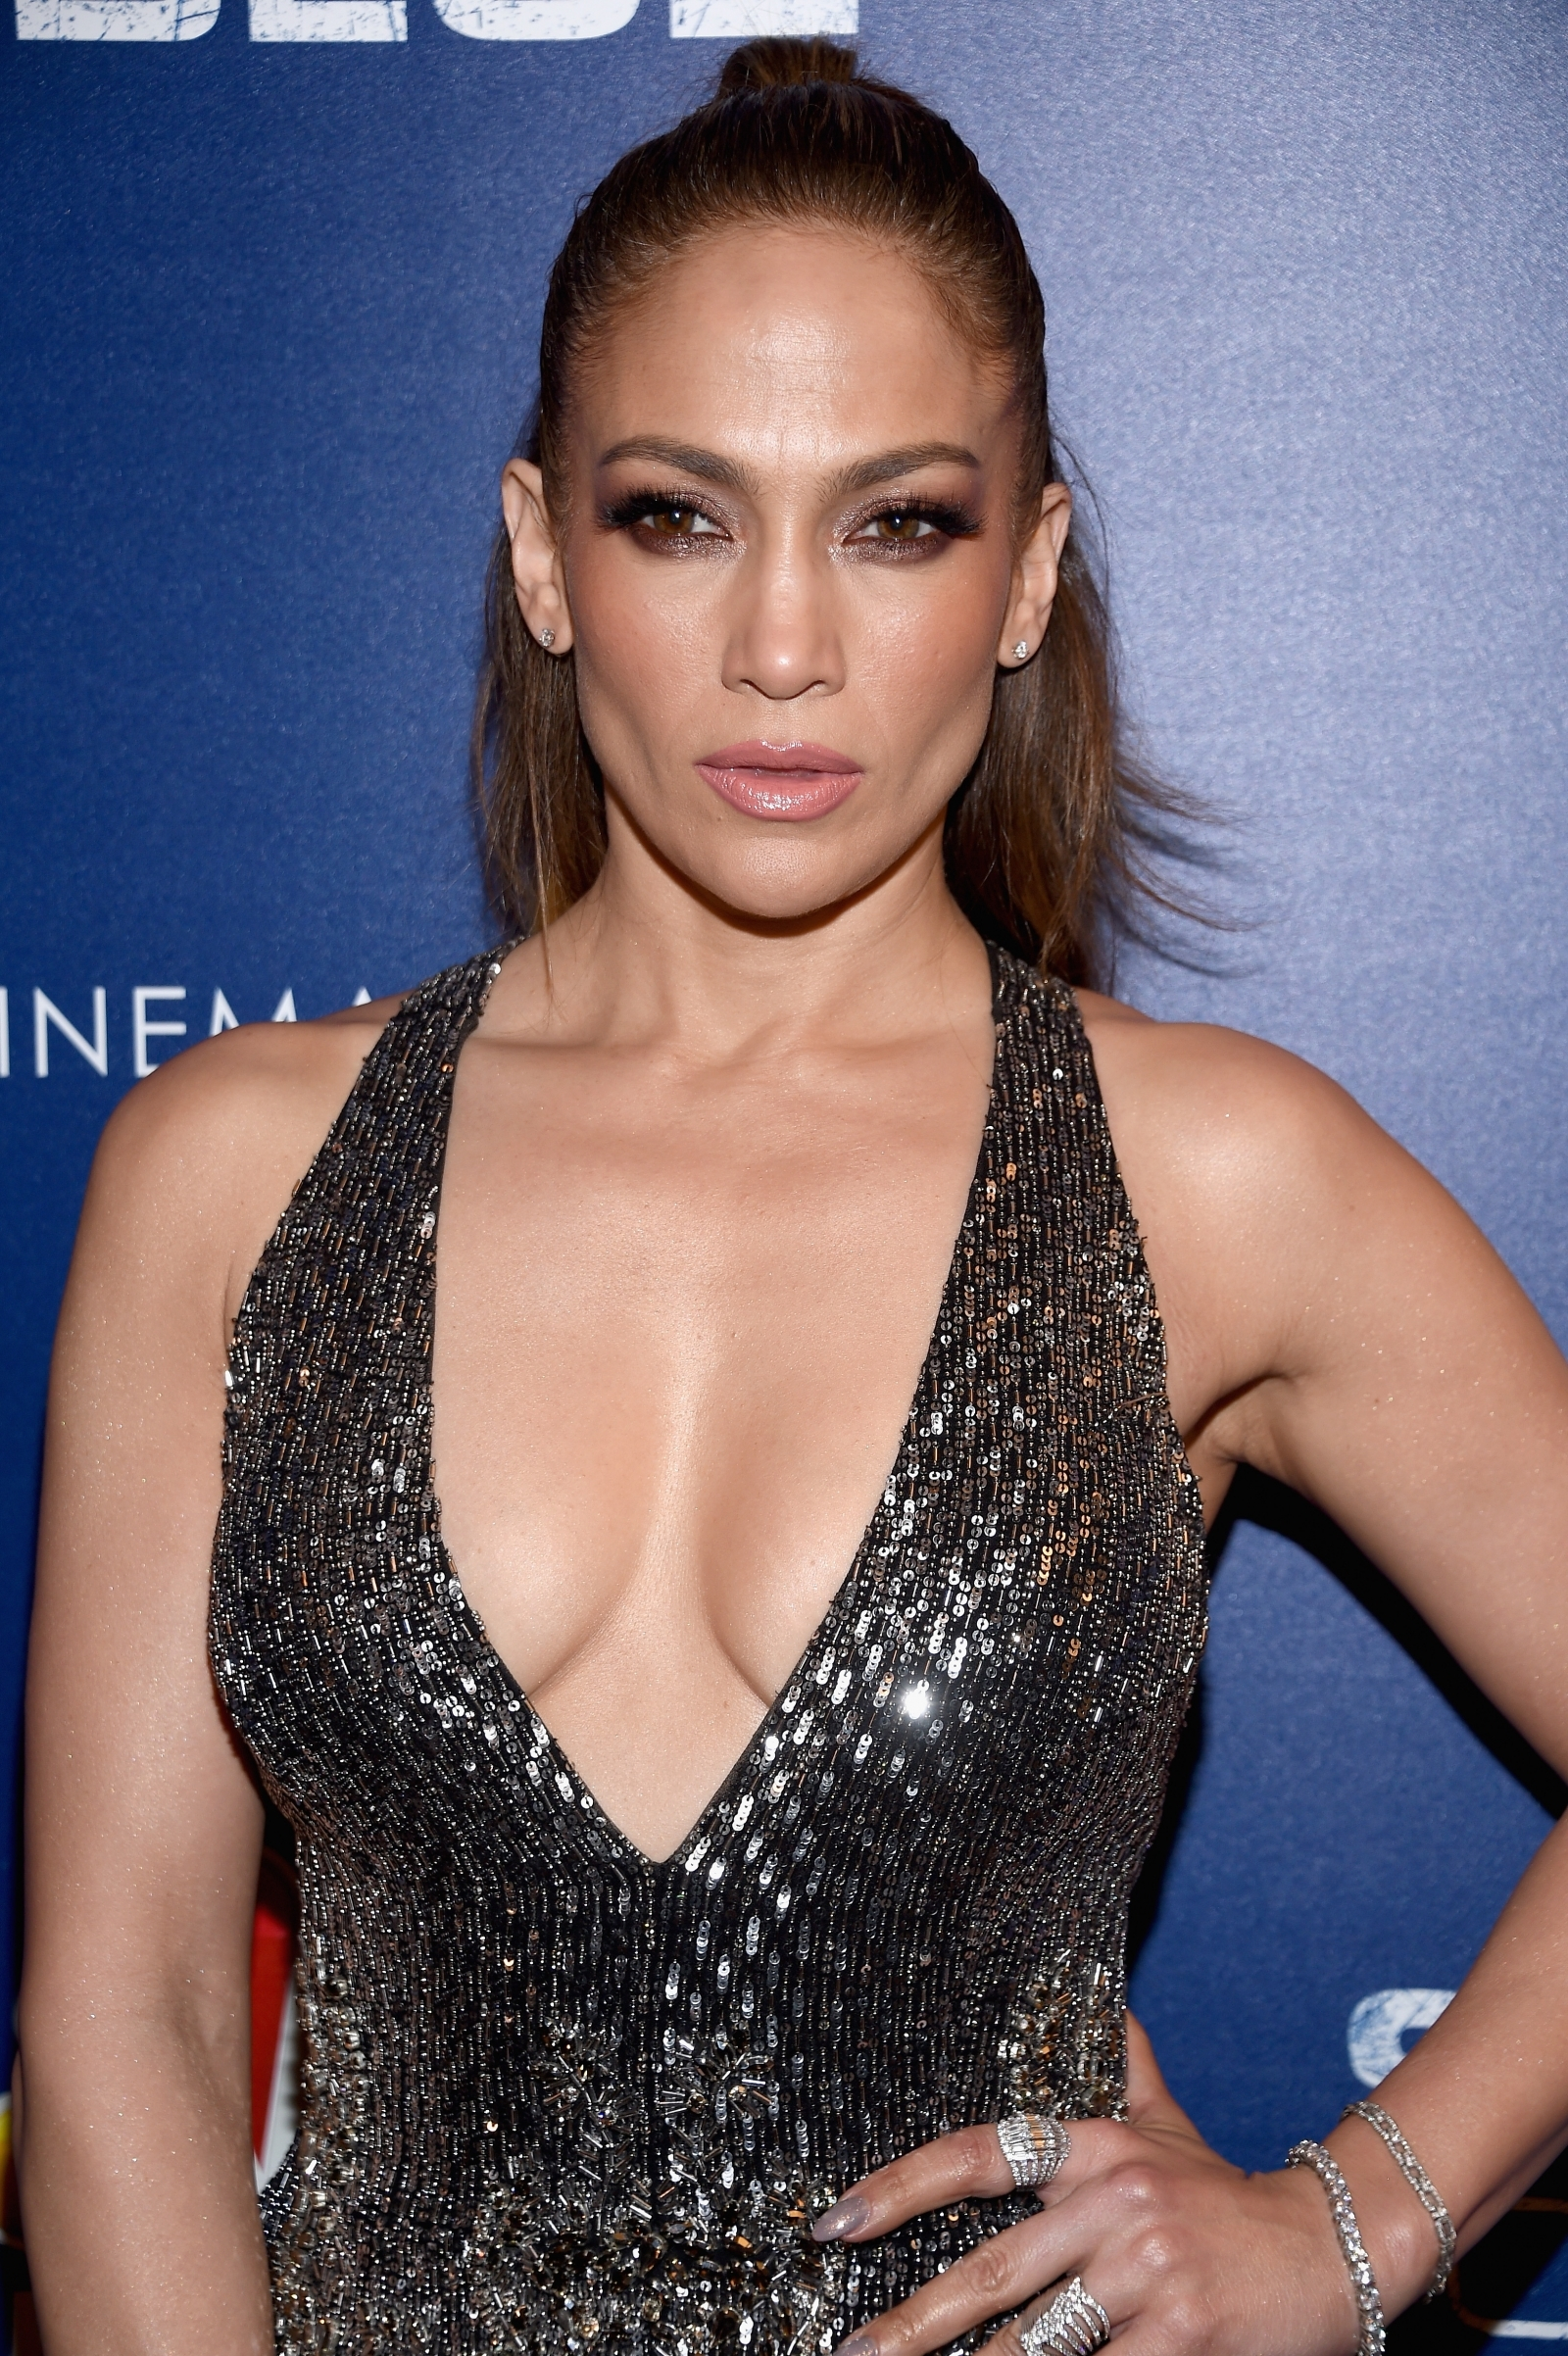 Jennifer Lopez Cleavage naked 418